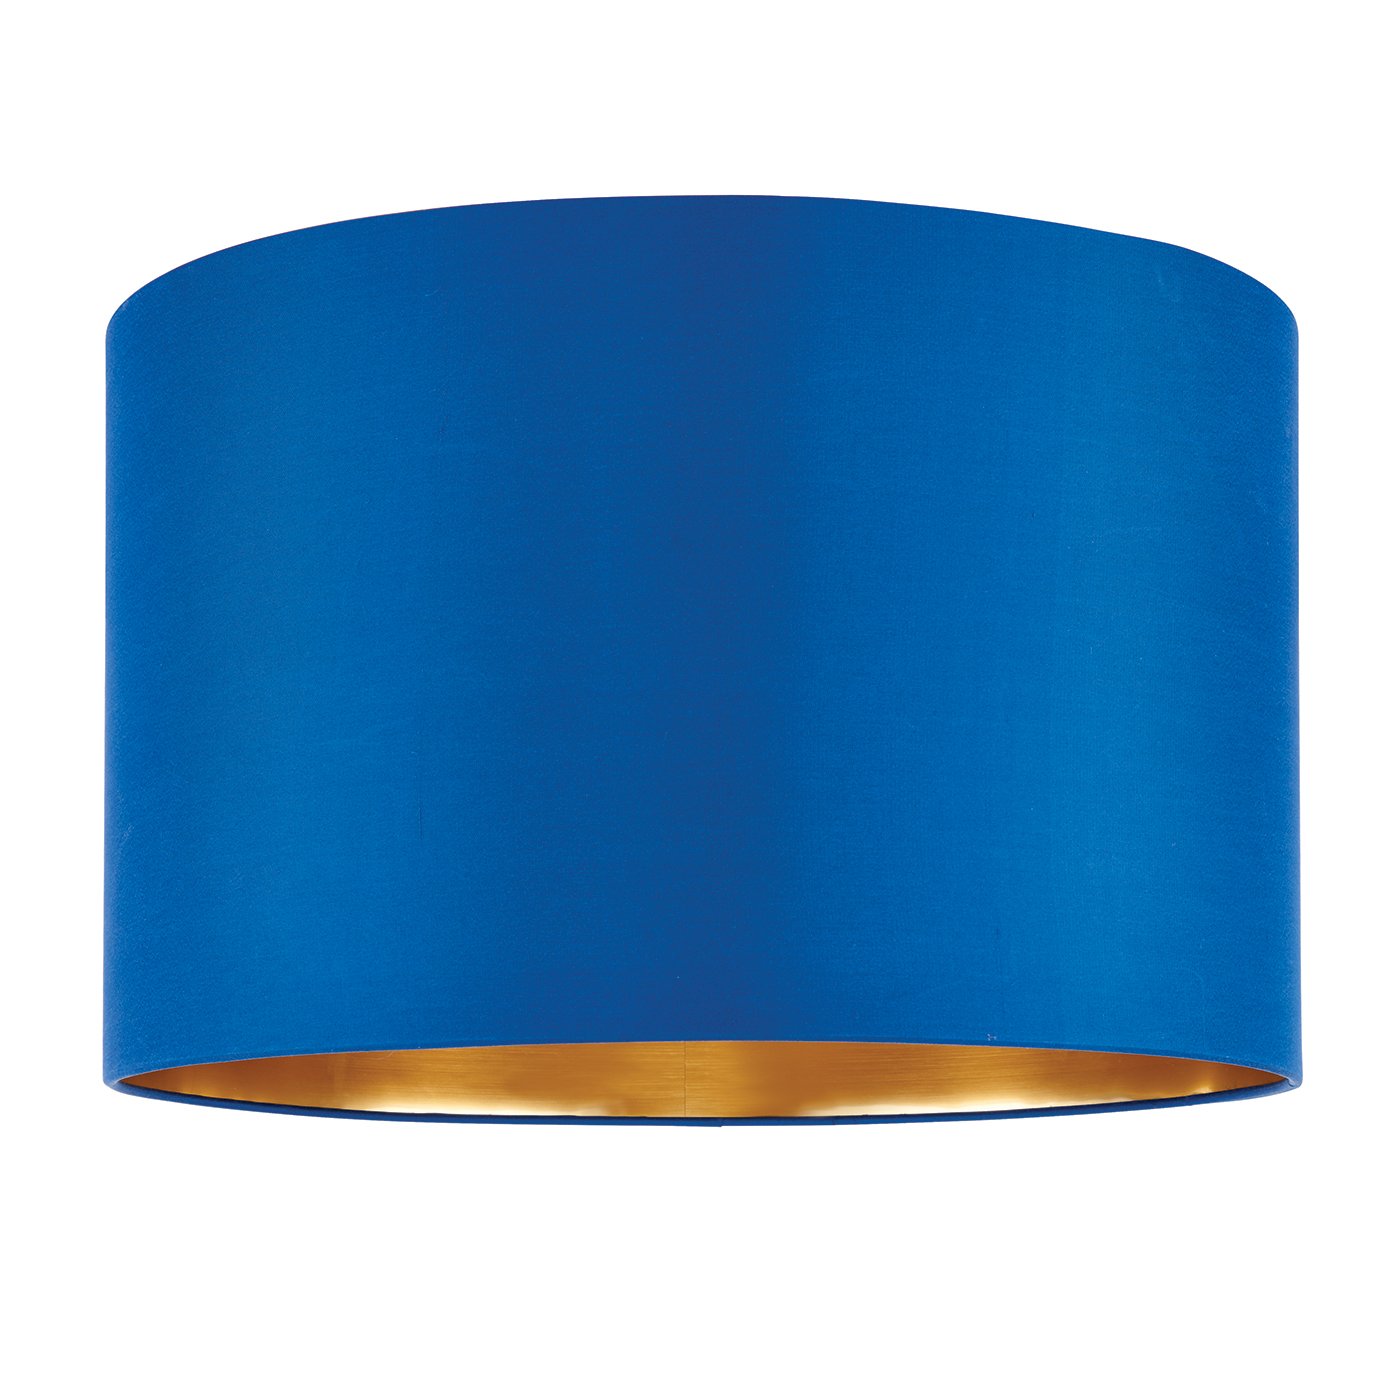 Endon Boutique lampshade 16 inch Midnight blue silk gold 250mm H x 400mm D Thumbnail 1